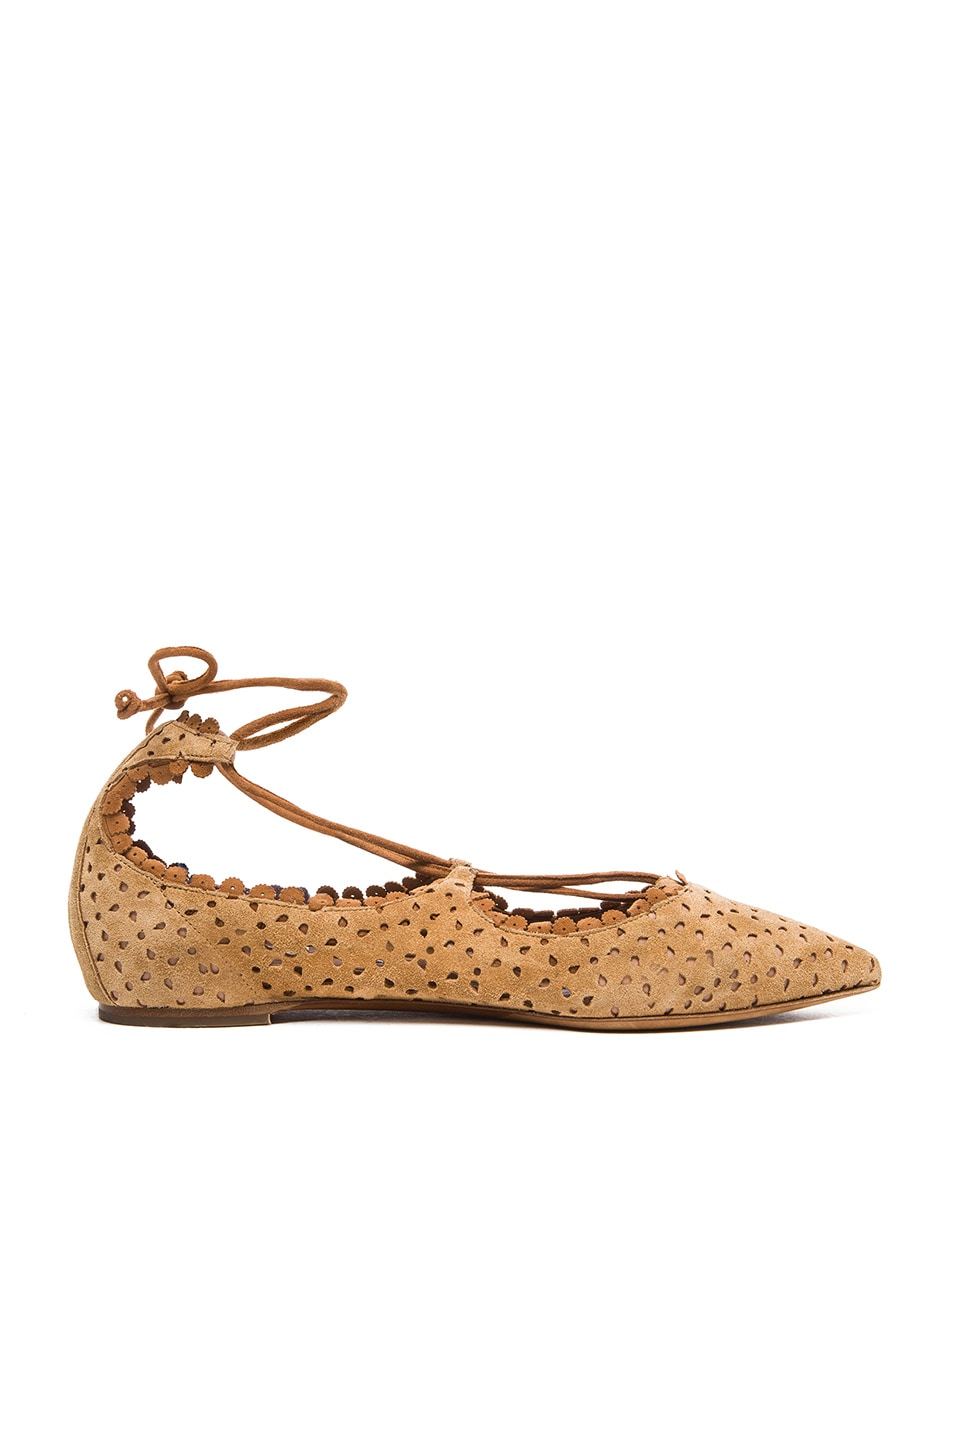 Image 1 of Tabitha Simmons Suede Willa Flats in Camel